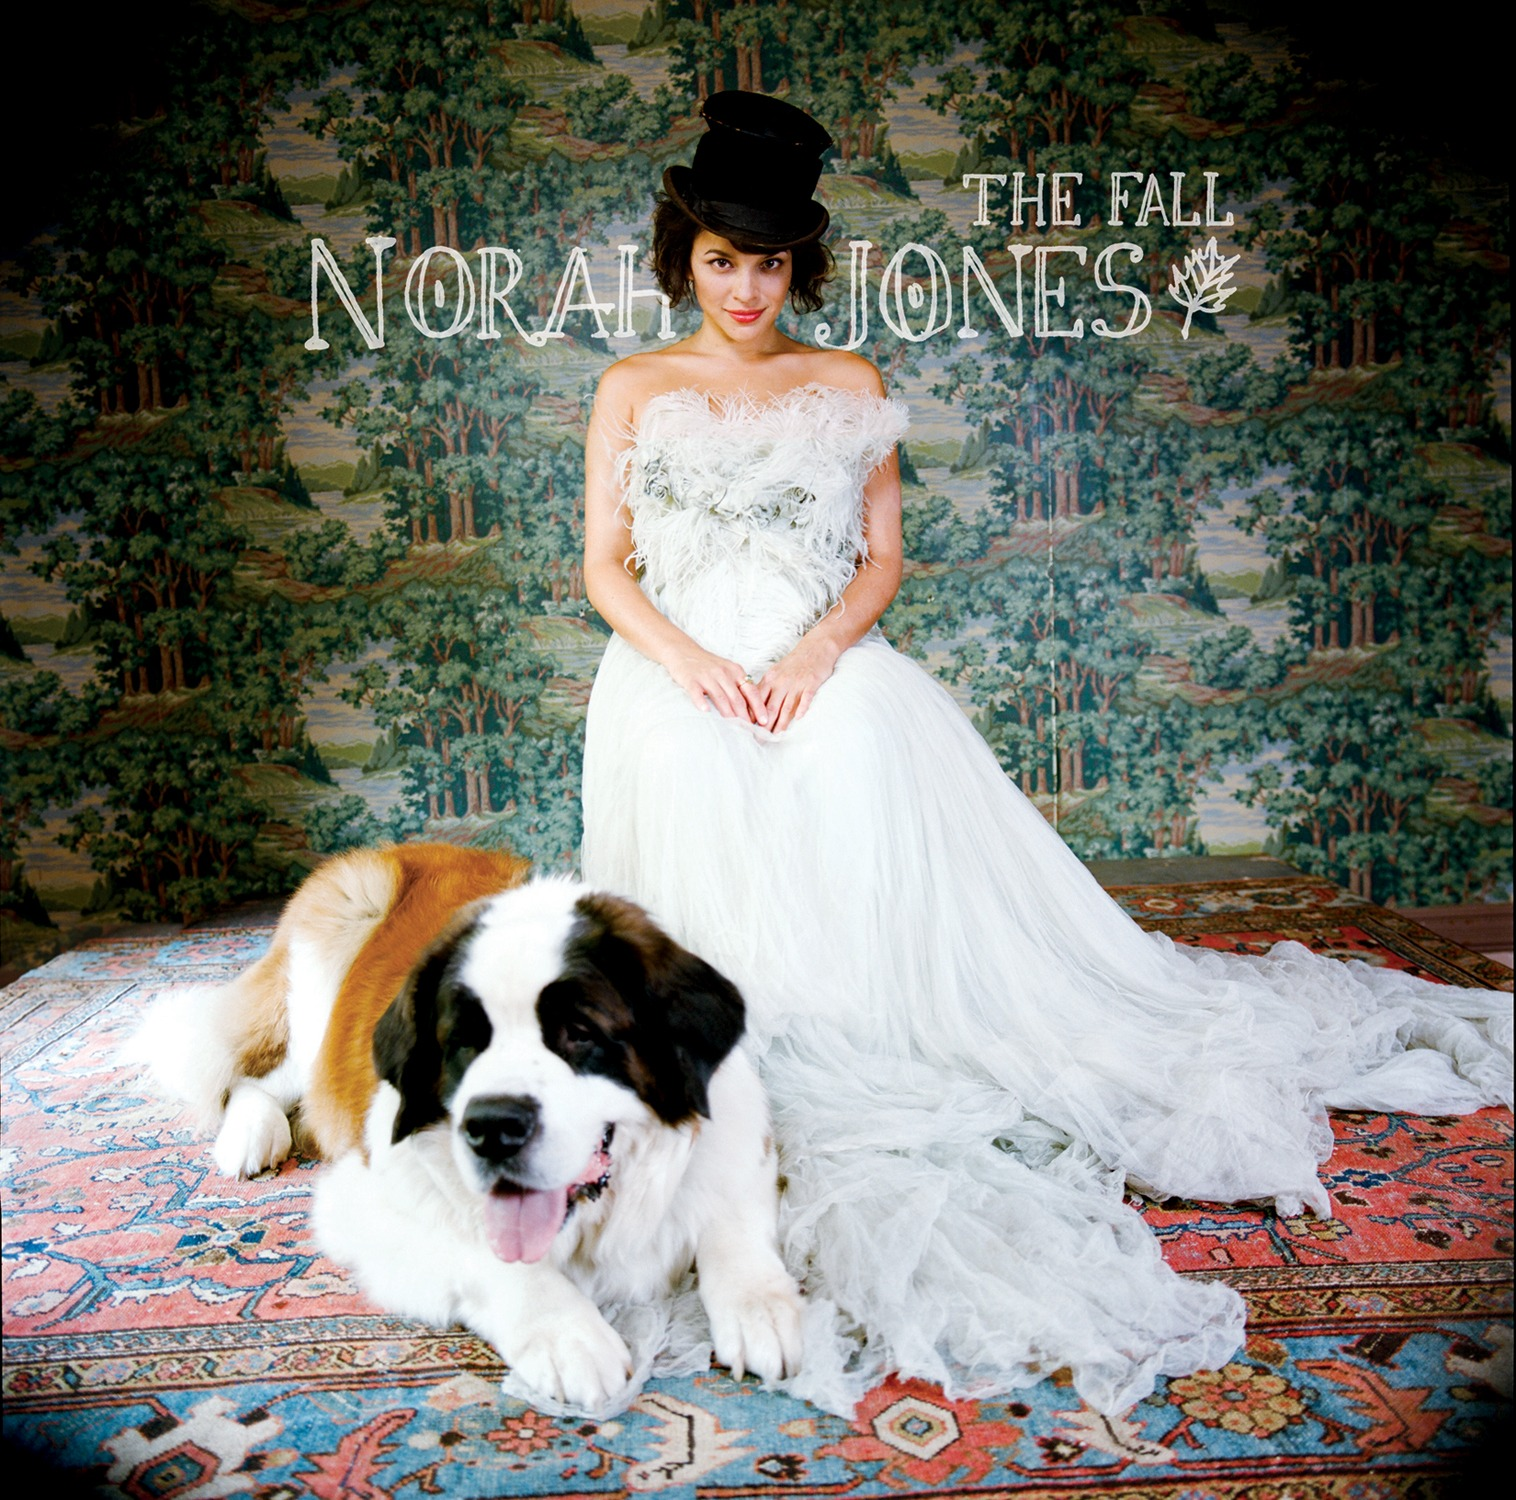 CONCERT REVIEW: Norah Jones opens her latest tour at Seattle\'s ...